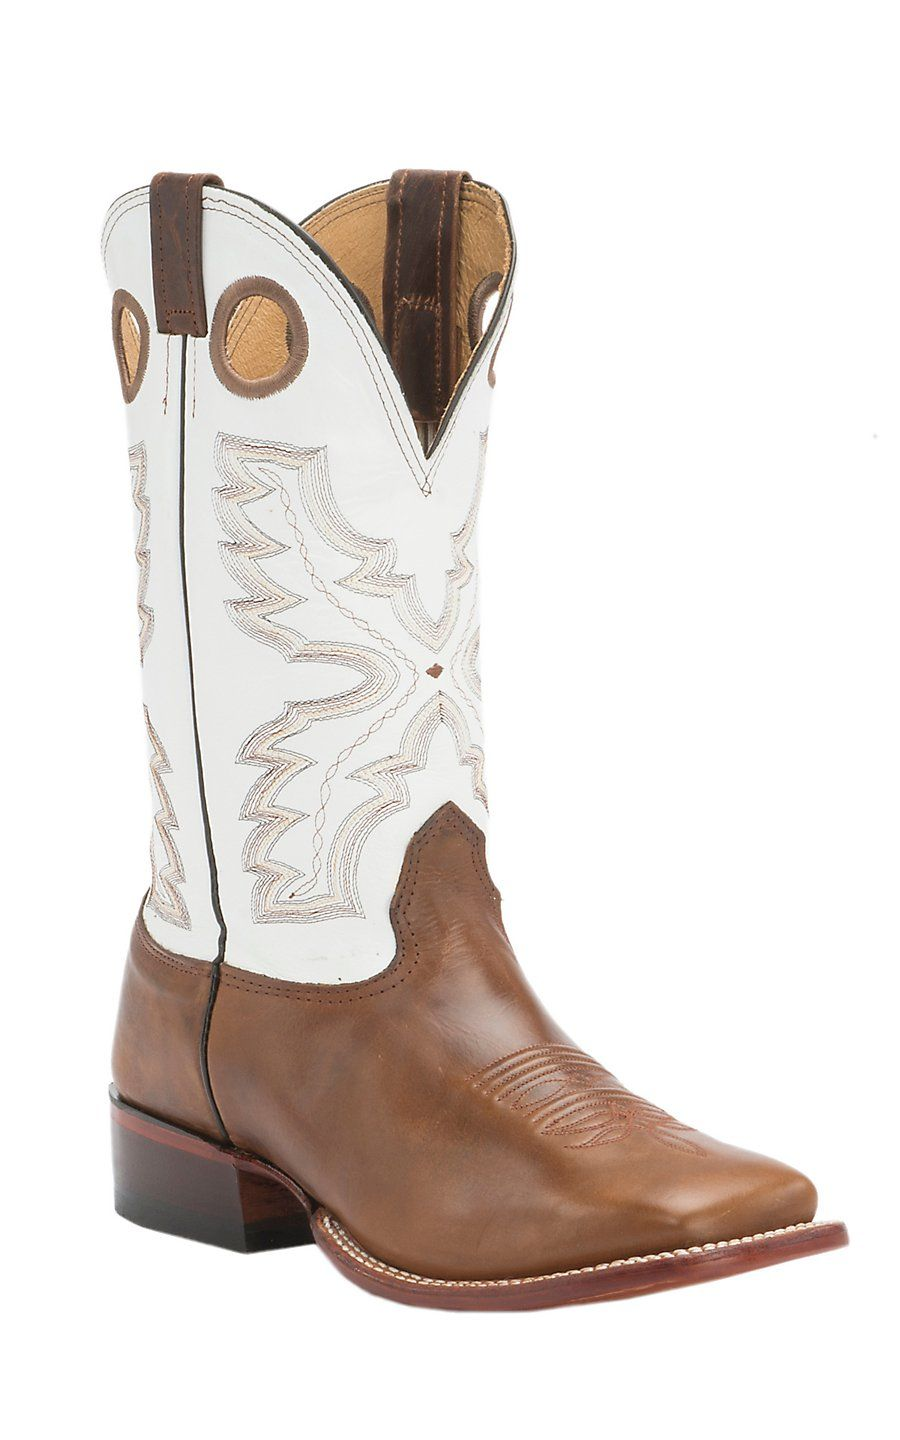 303e34c0ef2 Cavender's Men's Saddle Brown & White Square Toe Western Boots ...